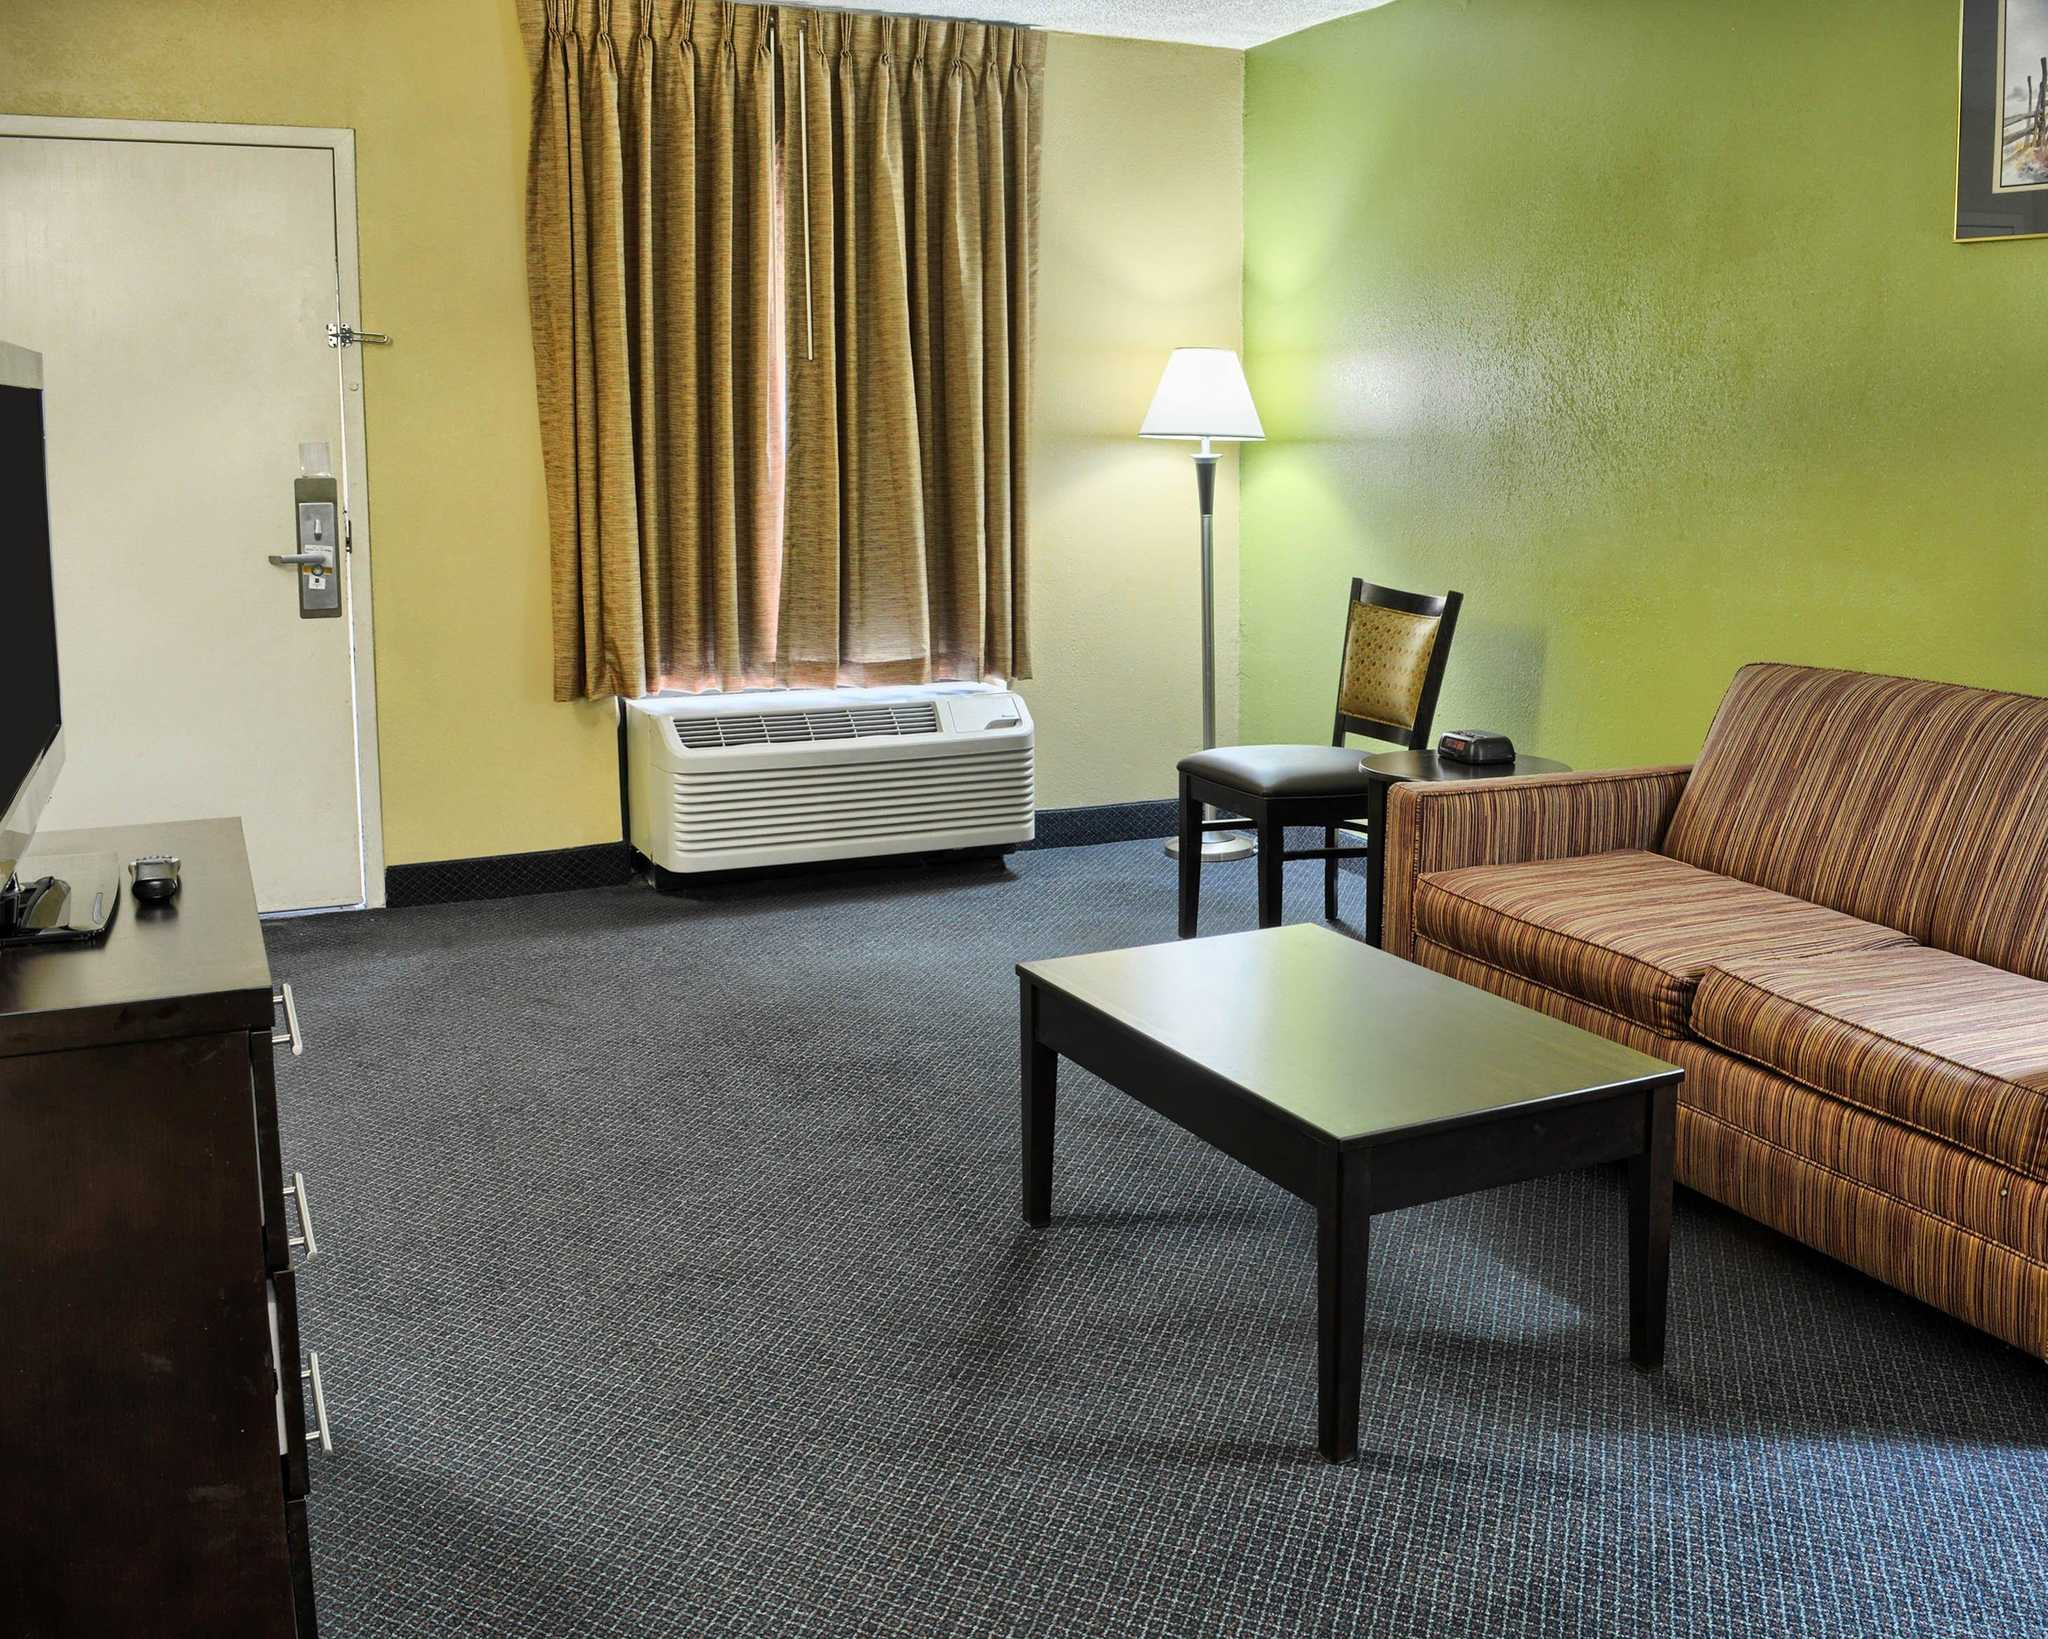 Quality Inn Fredericksburg, Central Park Area image 31